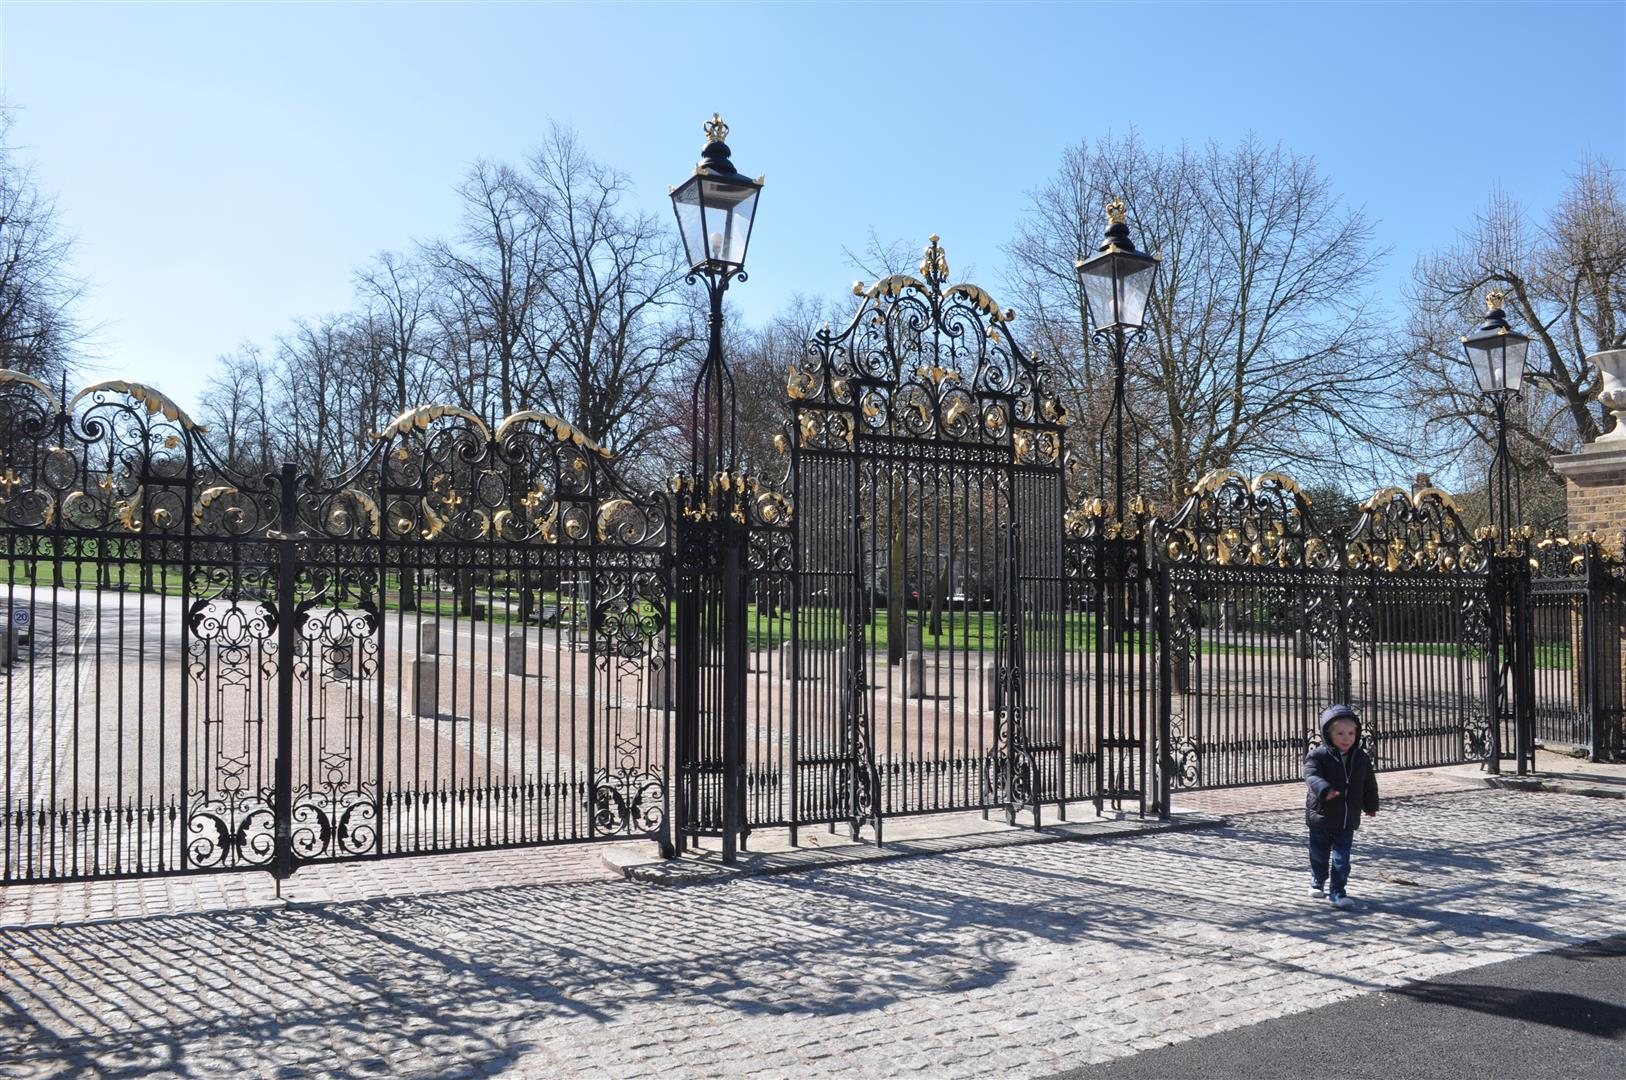 Gate, Royal Observatory, Greenwich